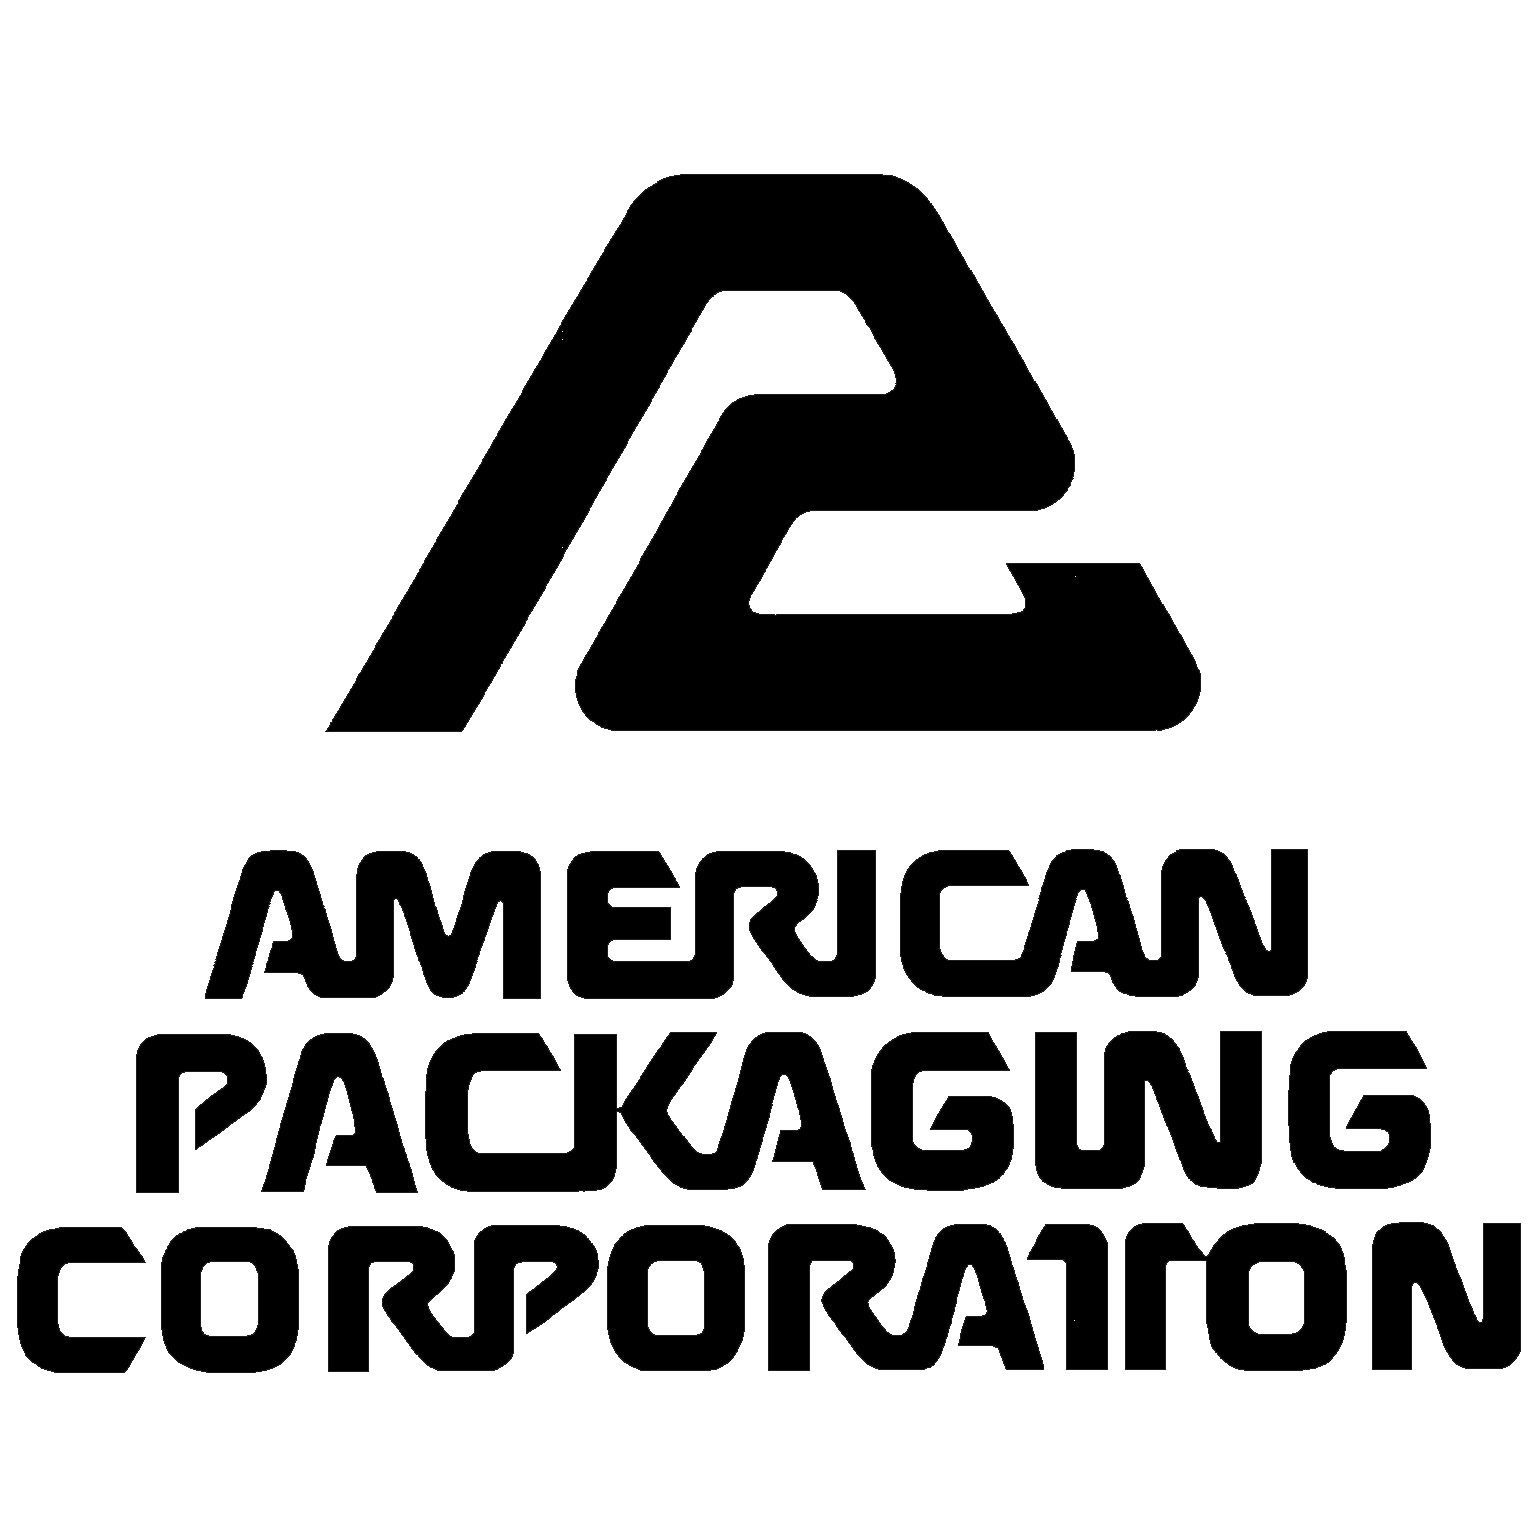 American Packaging